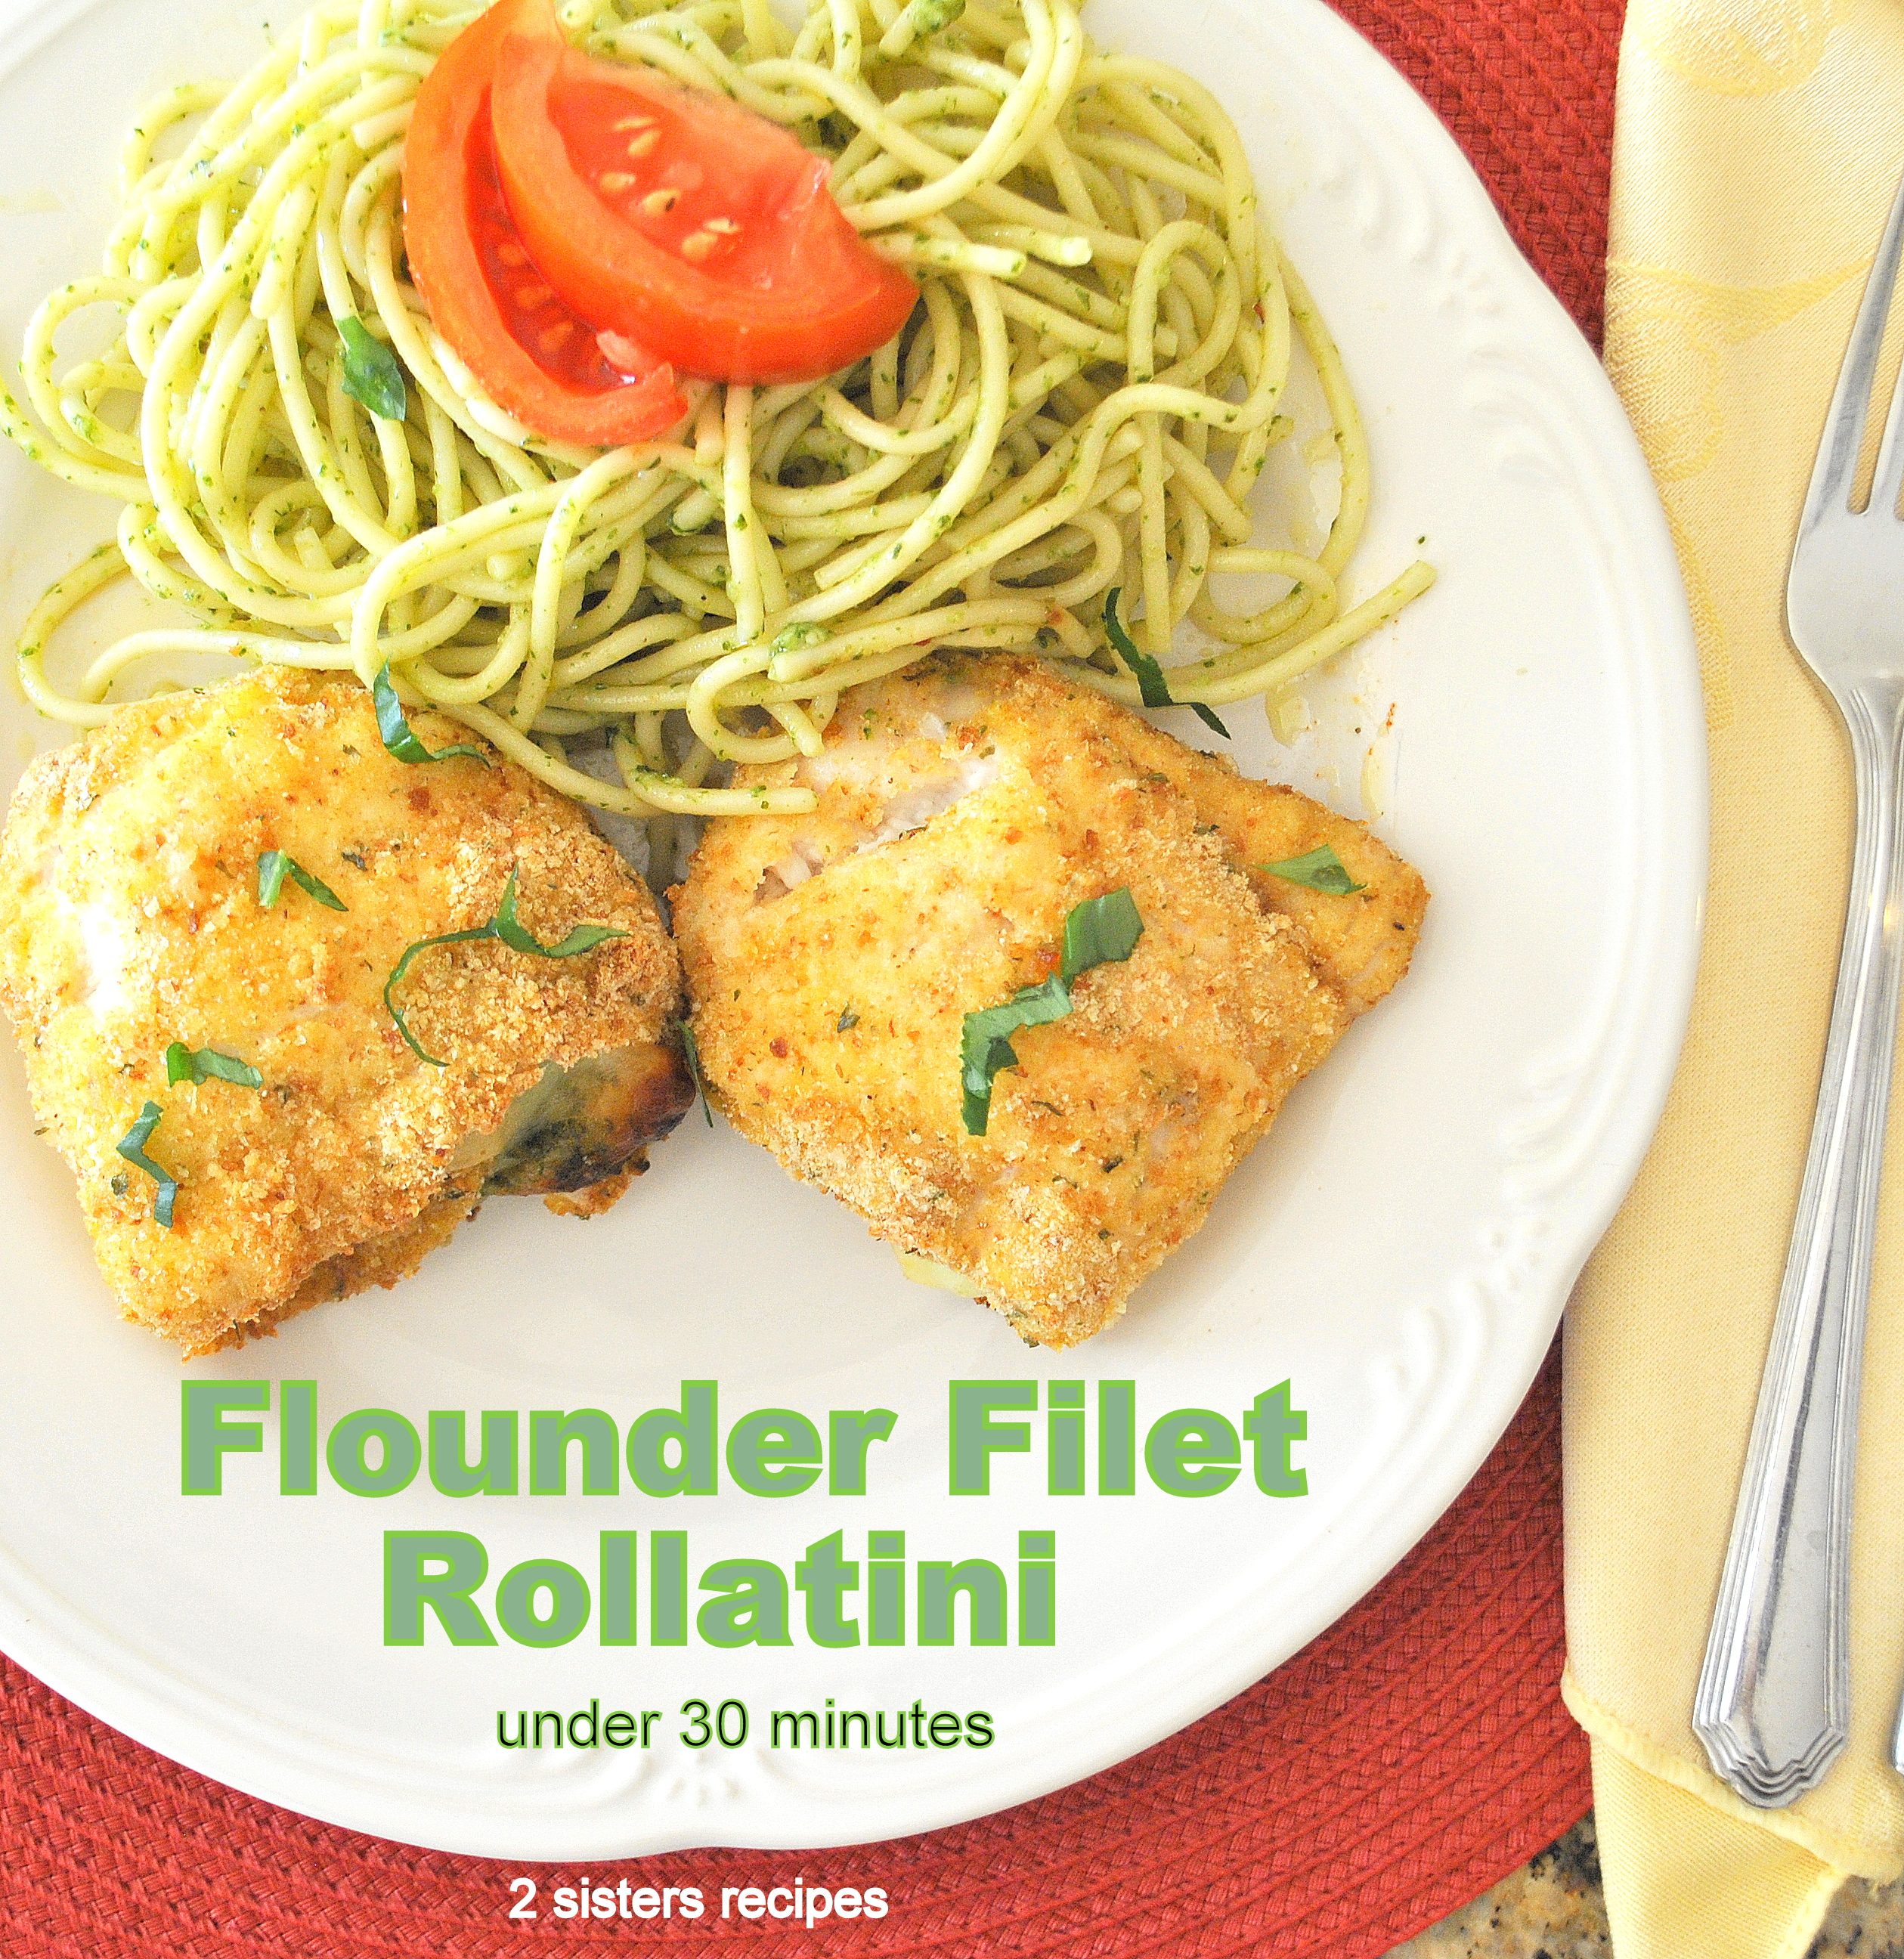 Under 30 minute meals archives 2 sisters recipes by anna and liz flounder filet rollatini by 2sistersrecipes seafood recipes under 30 minute meals forumfinder Image collections